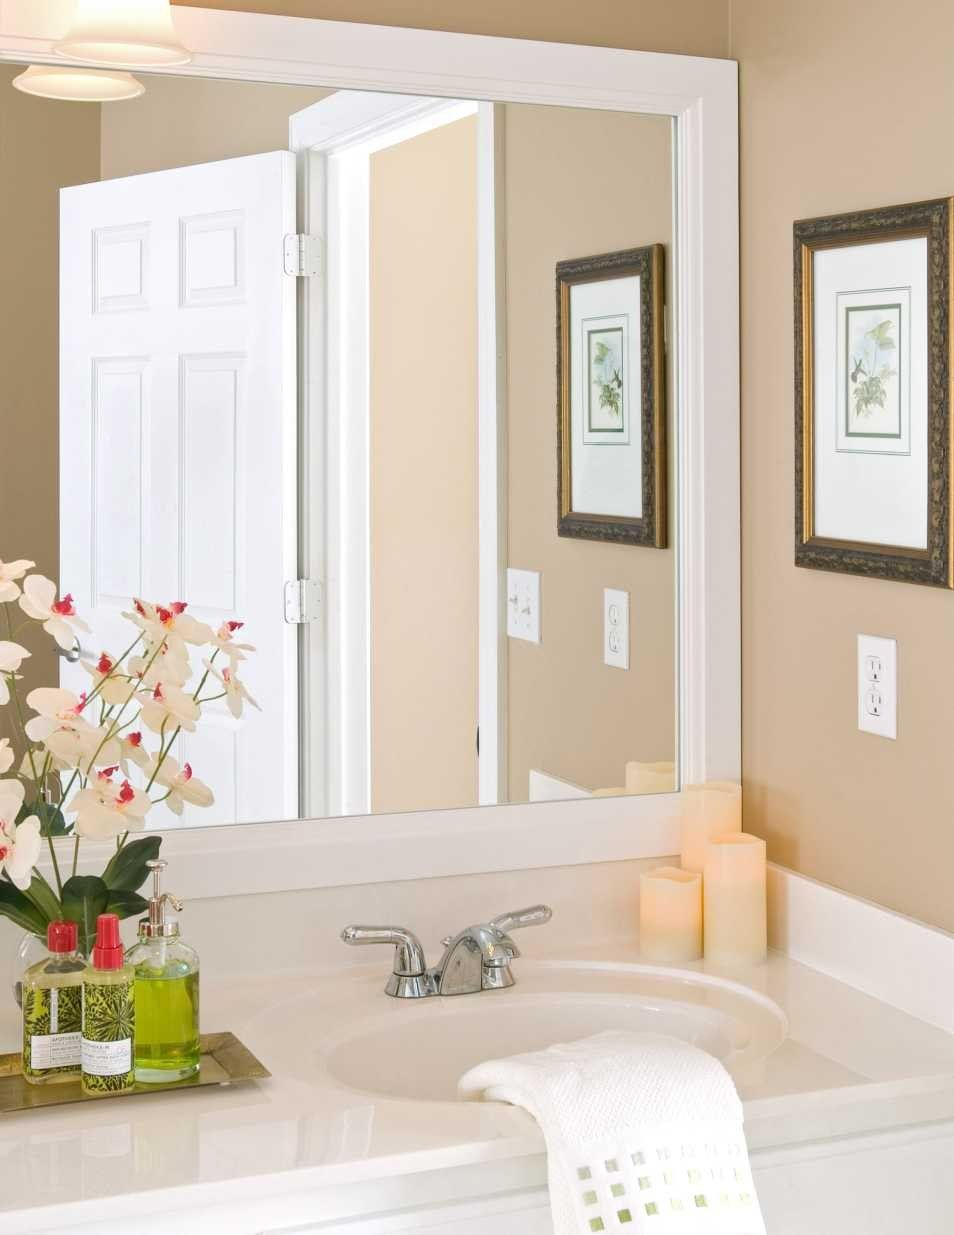 How to frame bathroom mirrors - White Framed Bathroom Mirrors